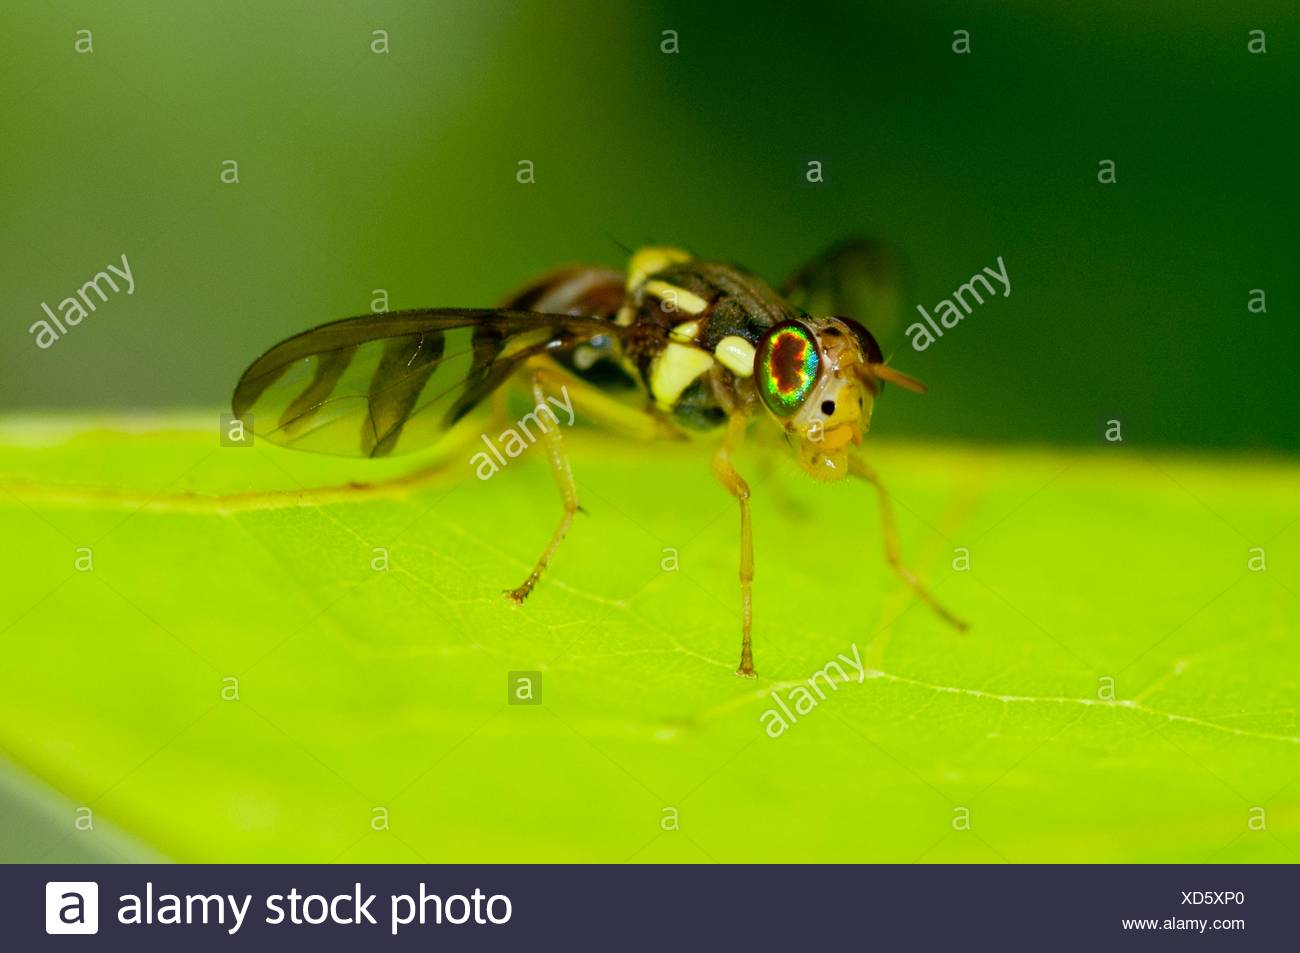 Wasp (Hymenoptera order), with intricate patterned wings on leaf, Klungkung, Bali, Indonesia. - Stock Image